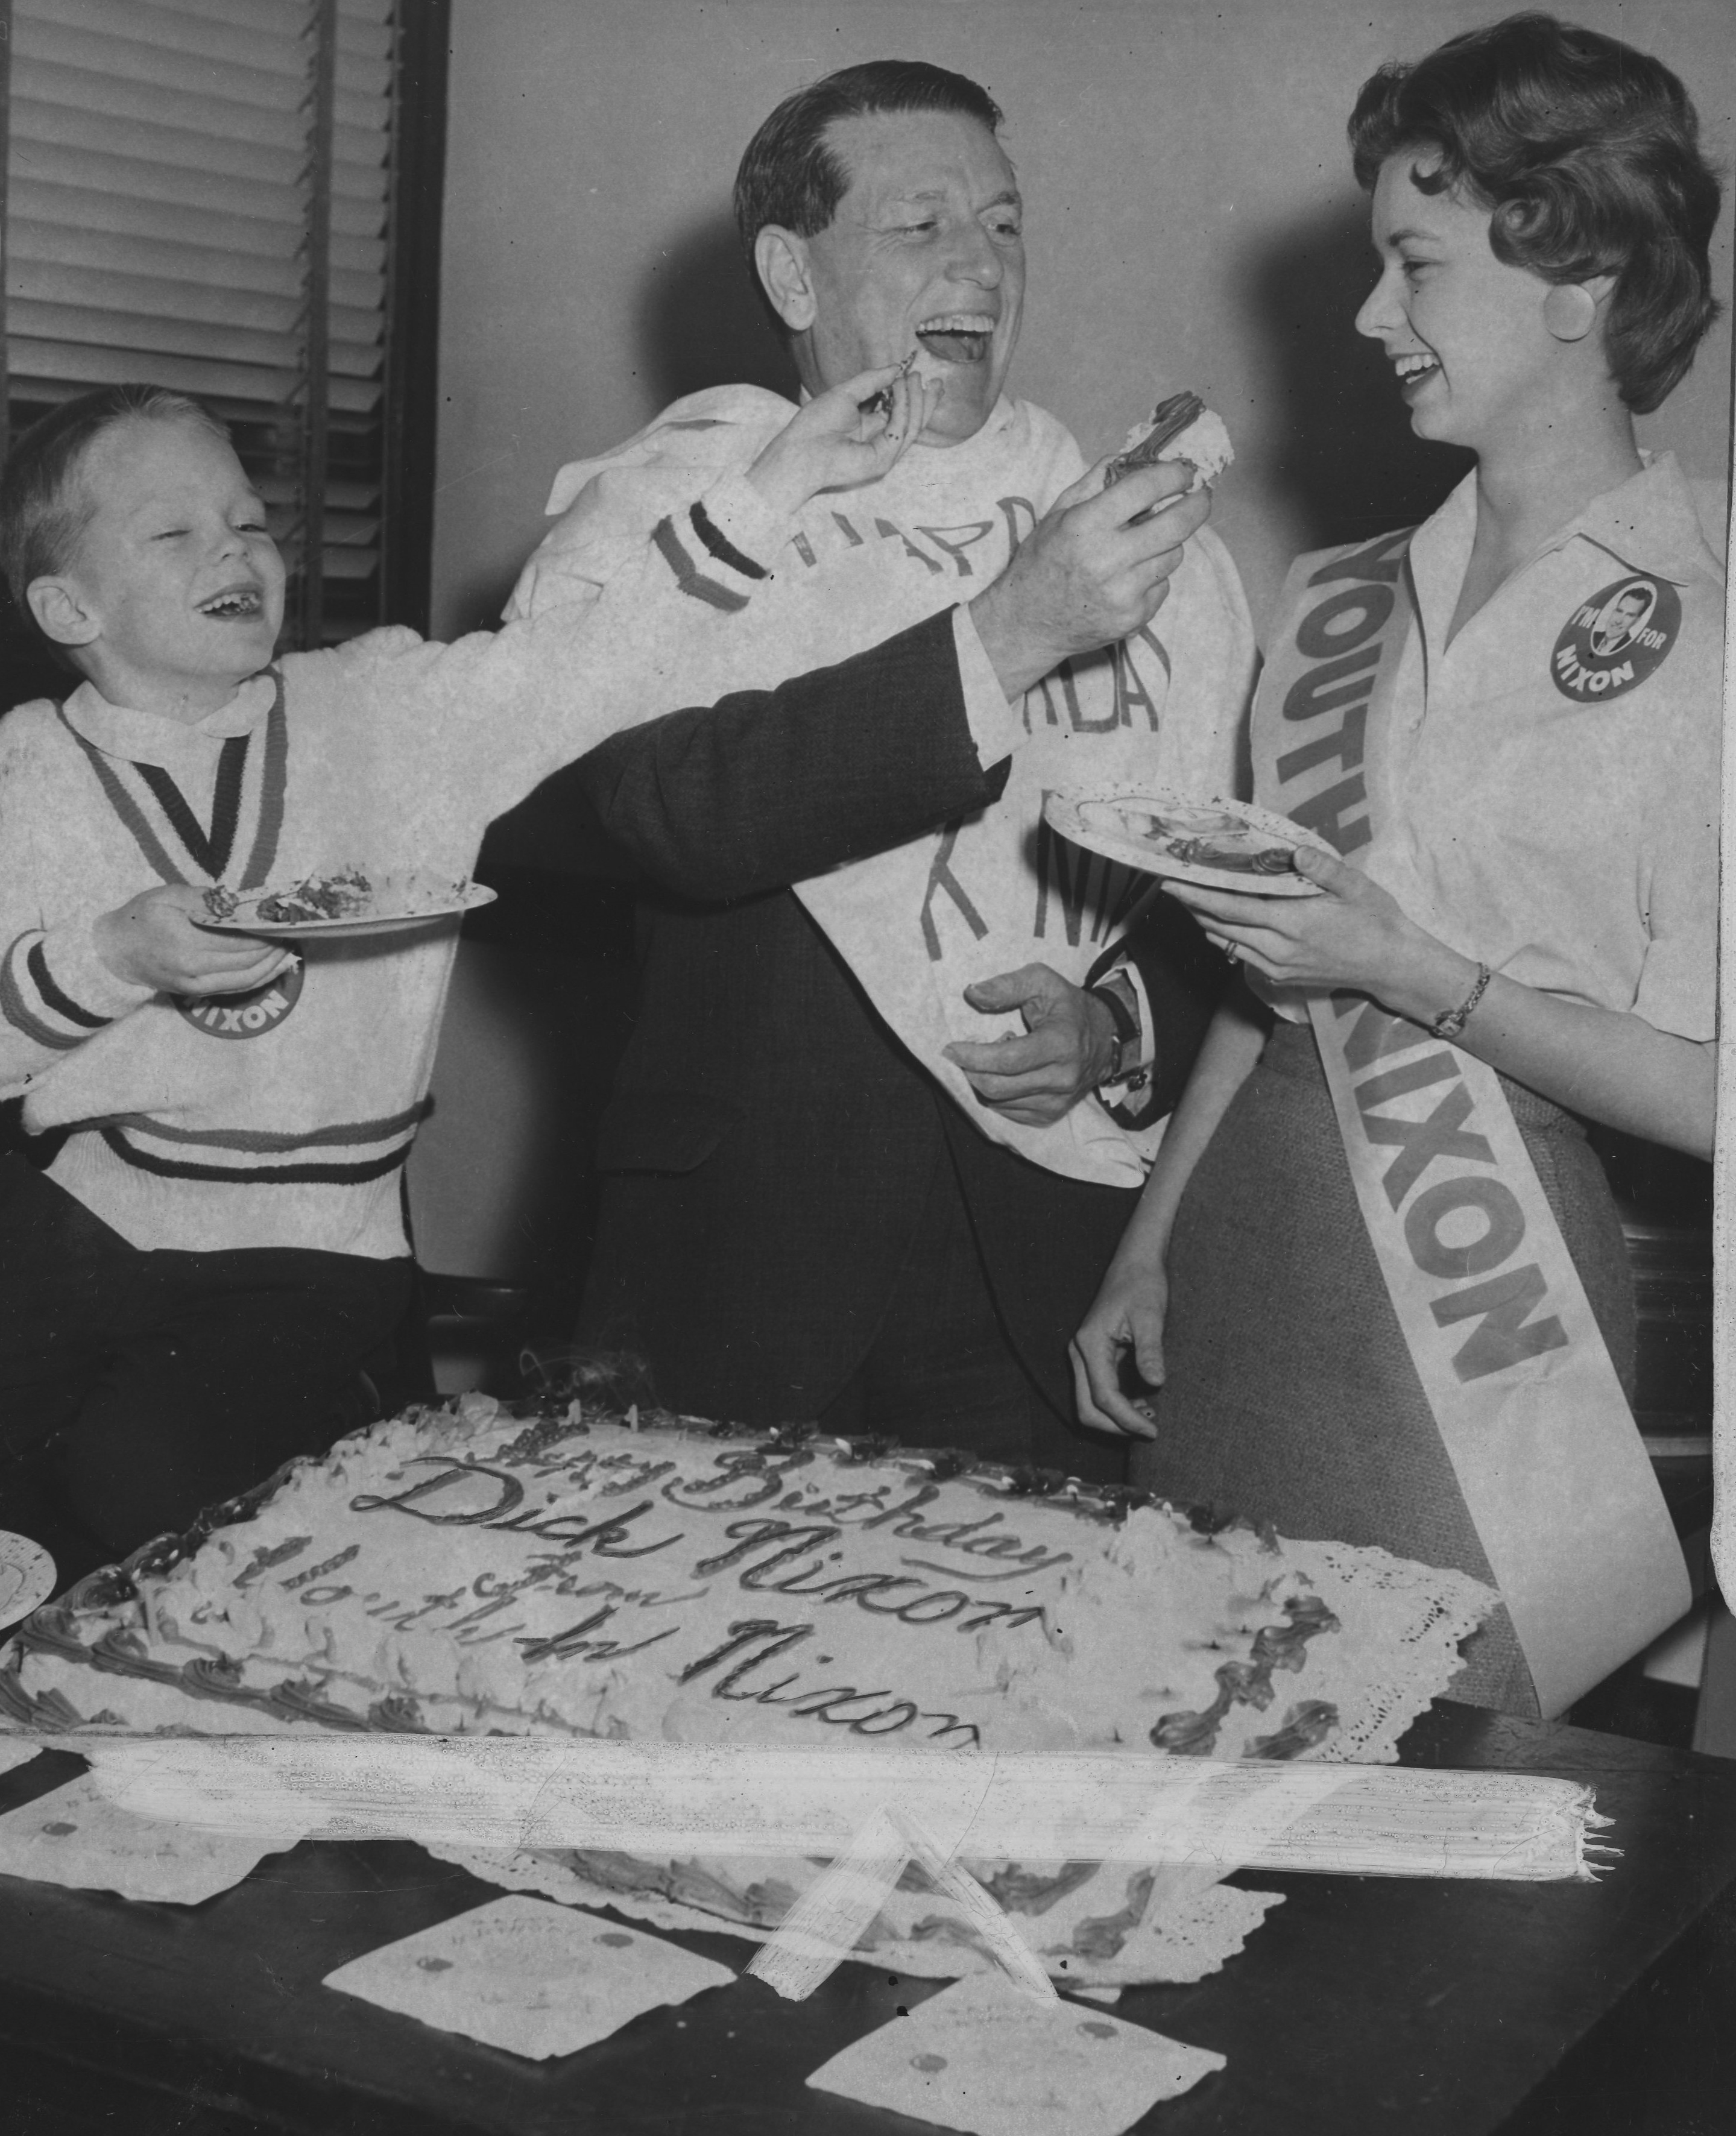 In 1960, Youth for Nixon celebrated Vice President Richard M. Nixon's 47th birthday with cake in the organization's Frick Building office. From left to right are Robbie Dunbar, Rep. James G. Fulton, head of Allegheny County's Nixon backers and Carolyn Mutz.